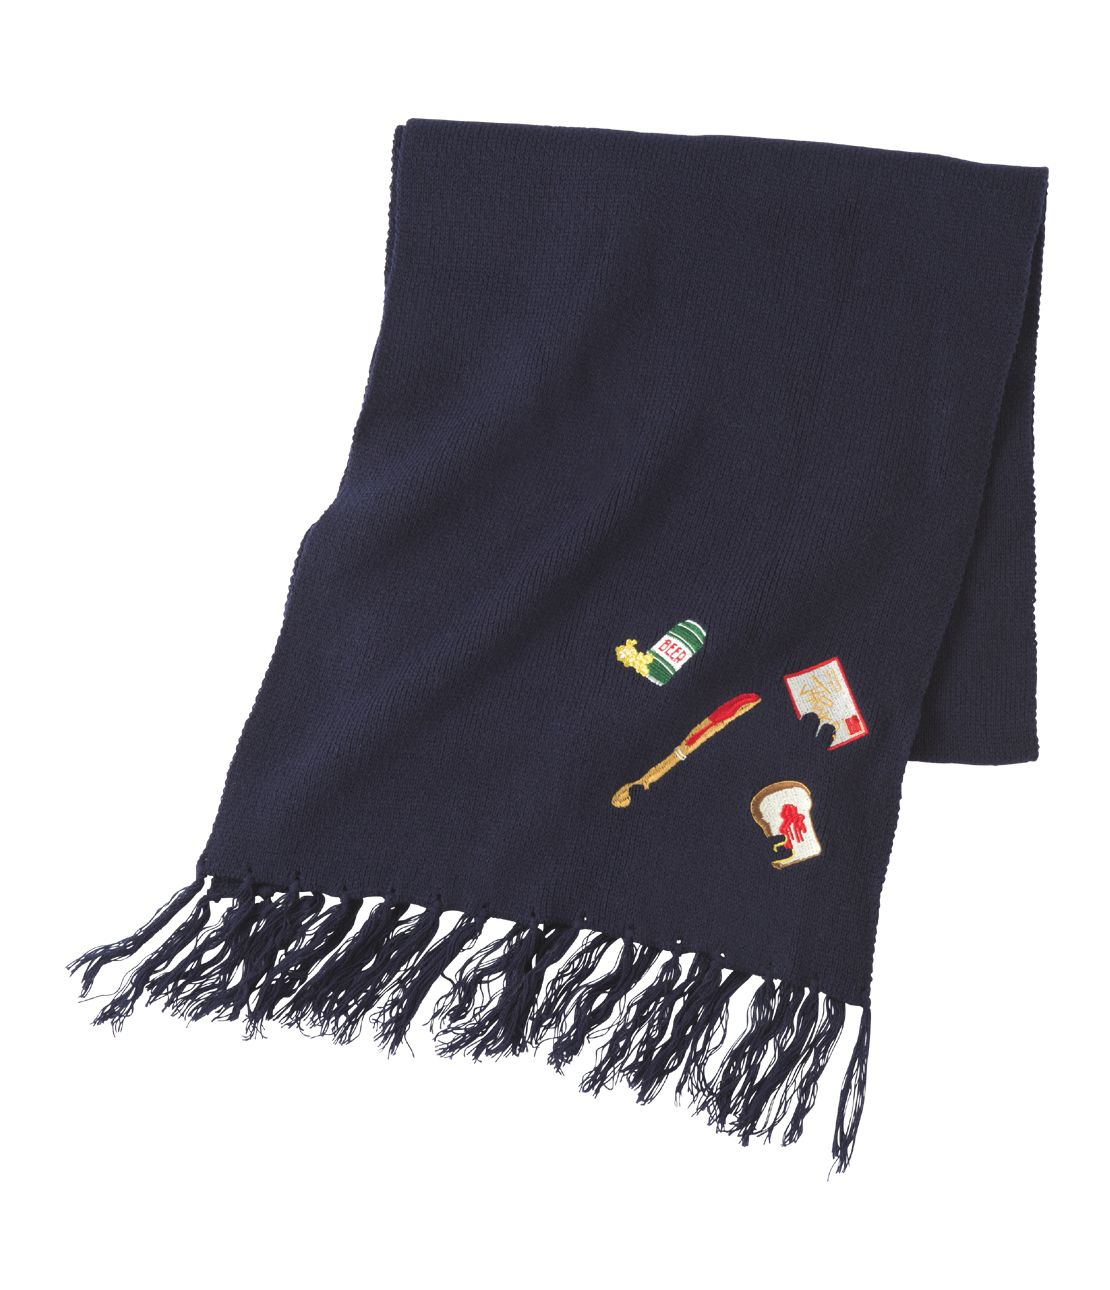 JRK embroidery scarf